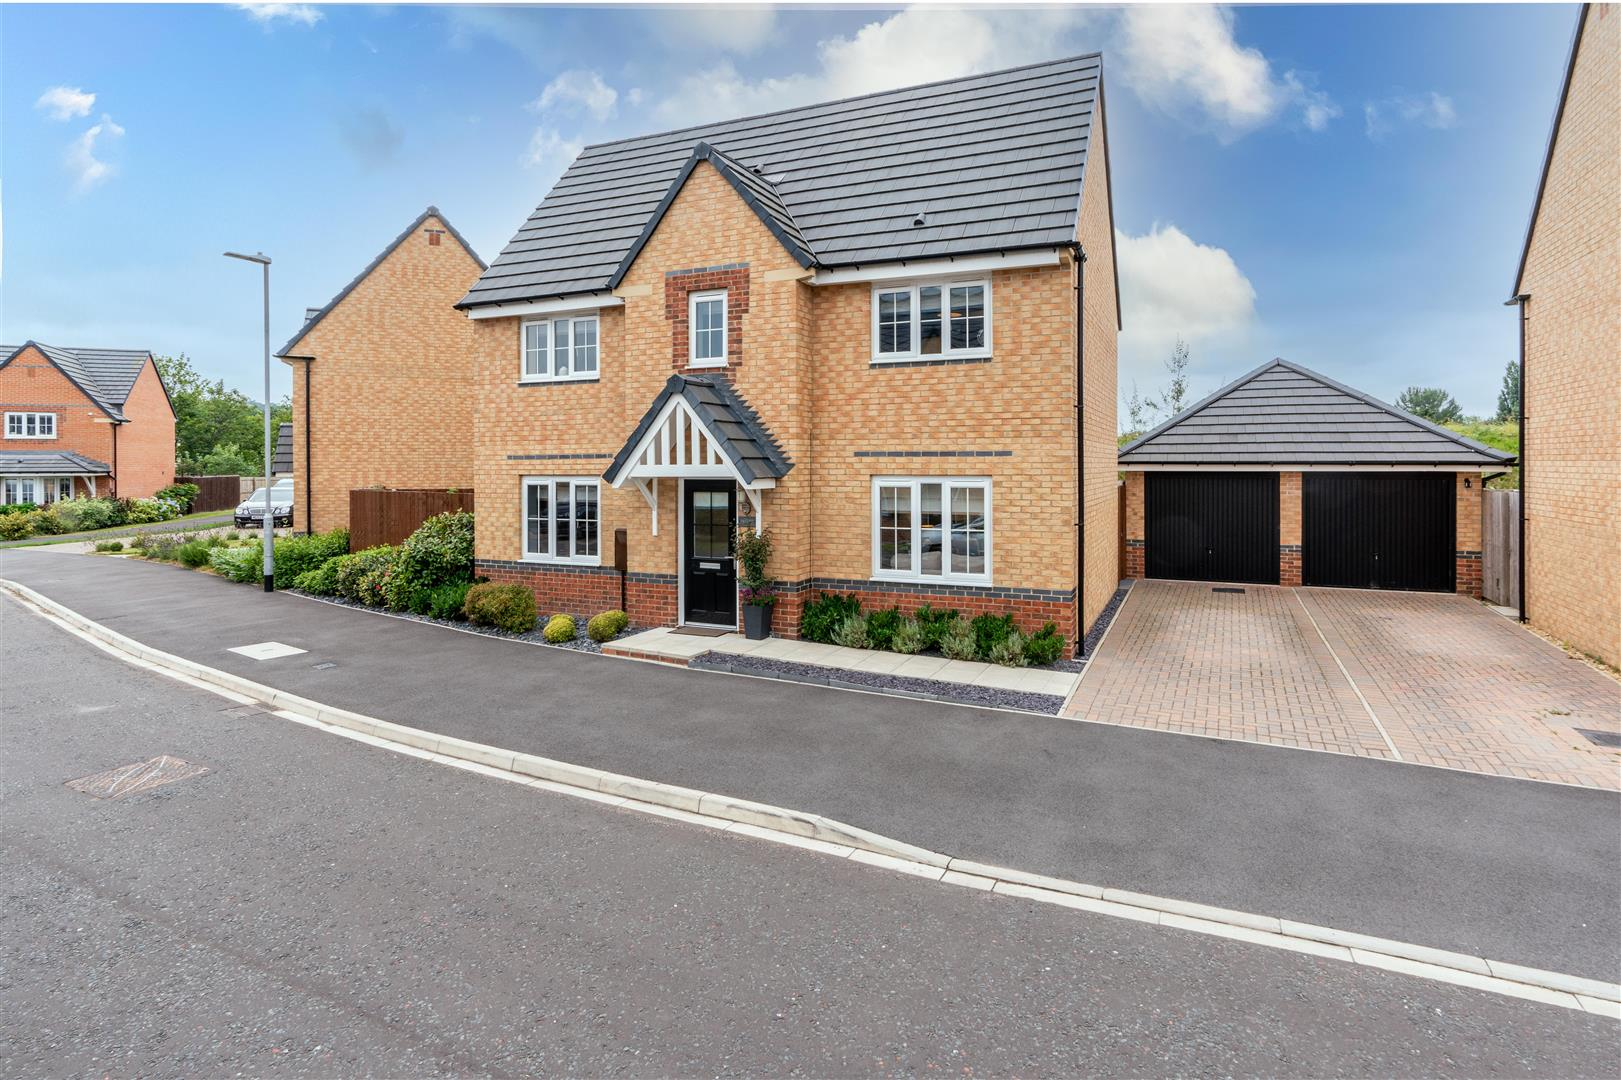 3 bed detached house for sale in Ropery Road, Gateshead  - Property Image 1